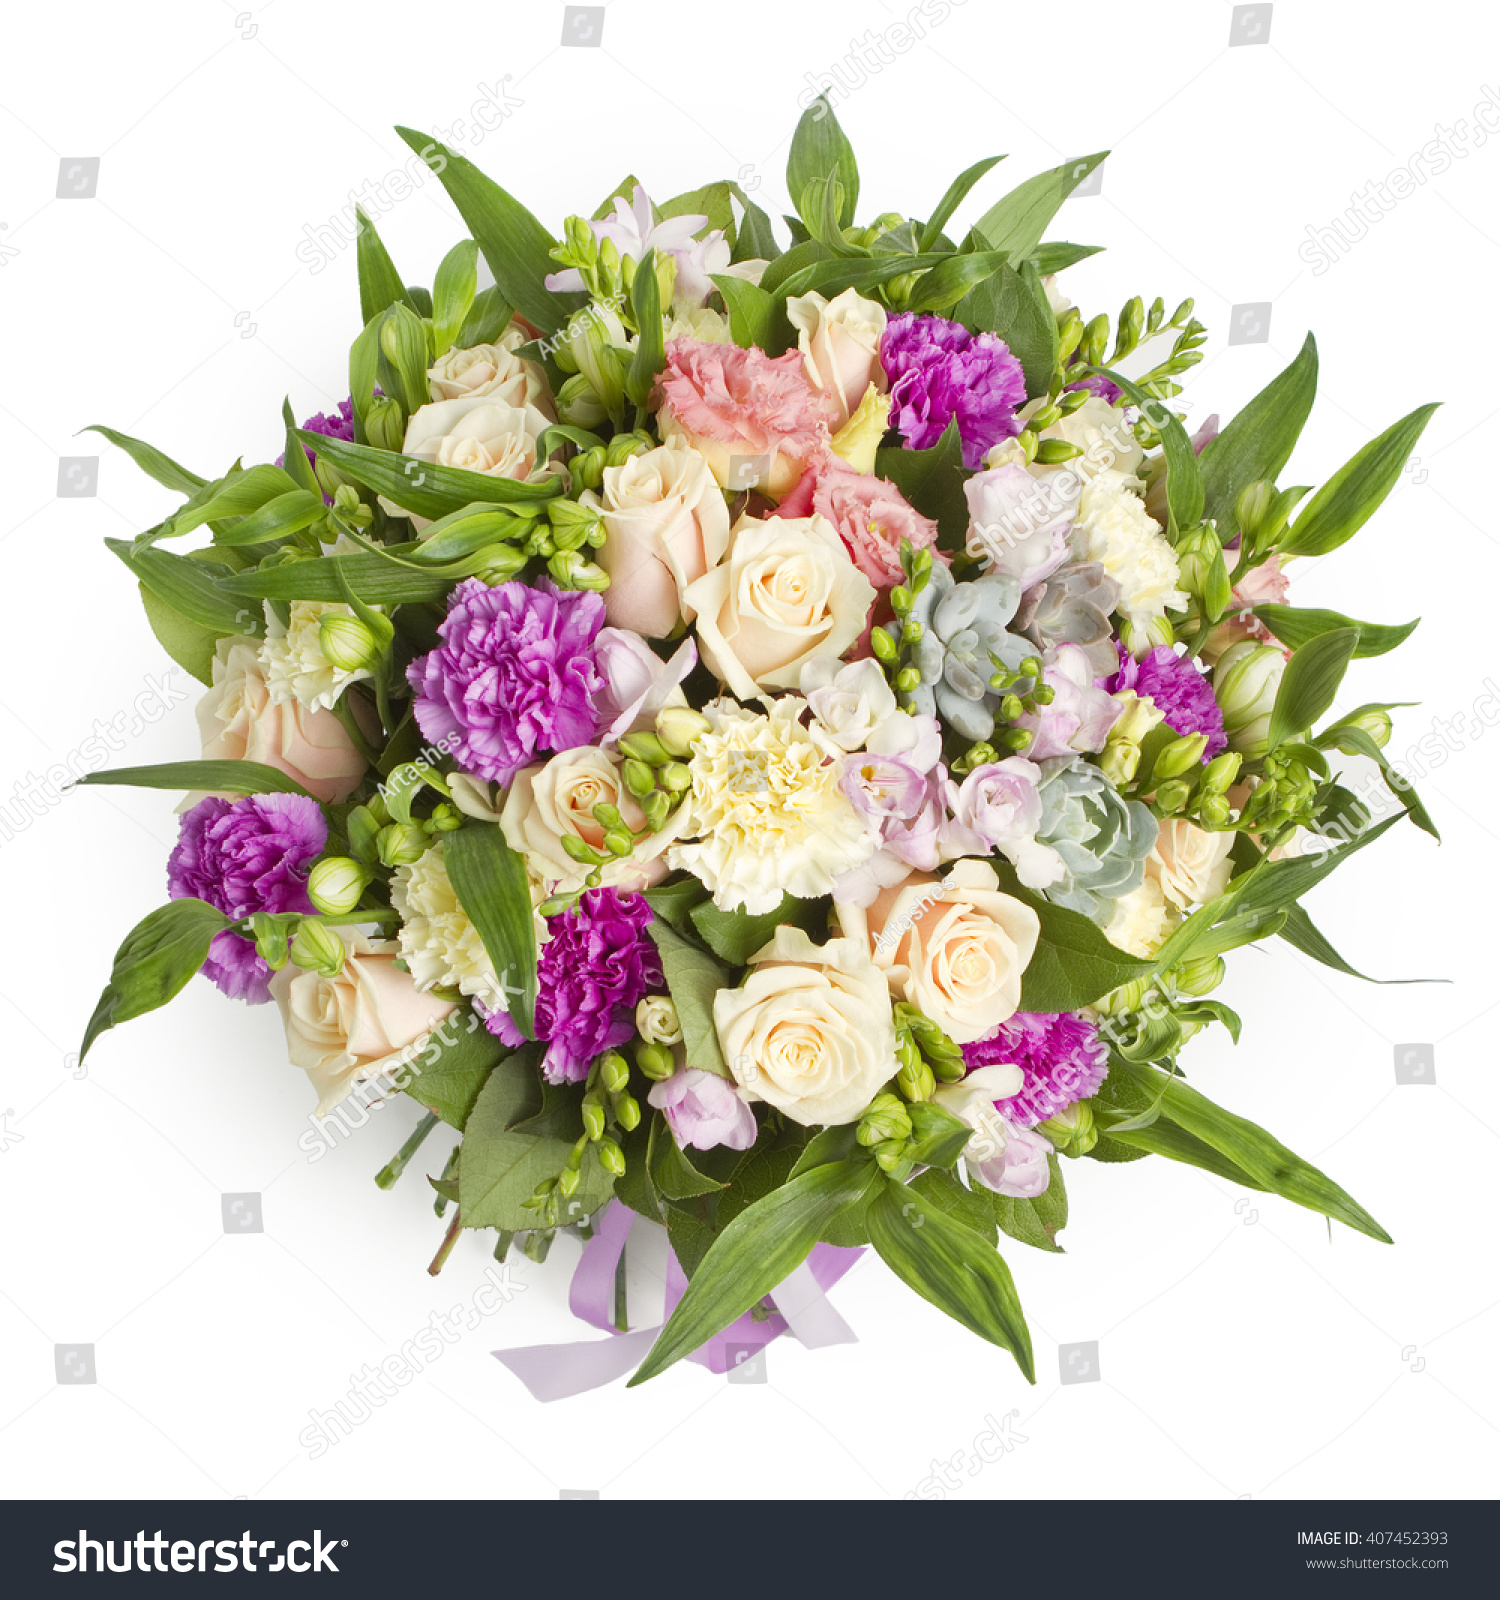 Colorful bouquet flowers stock photo edit now 407452393 shutterstock colorful bouquet of flowers izmirmasajfo